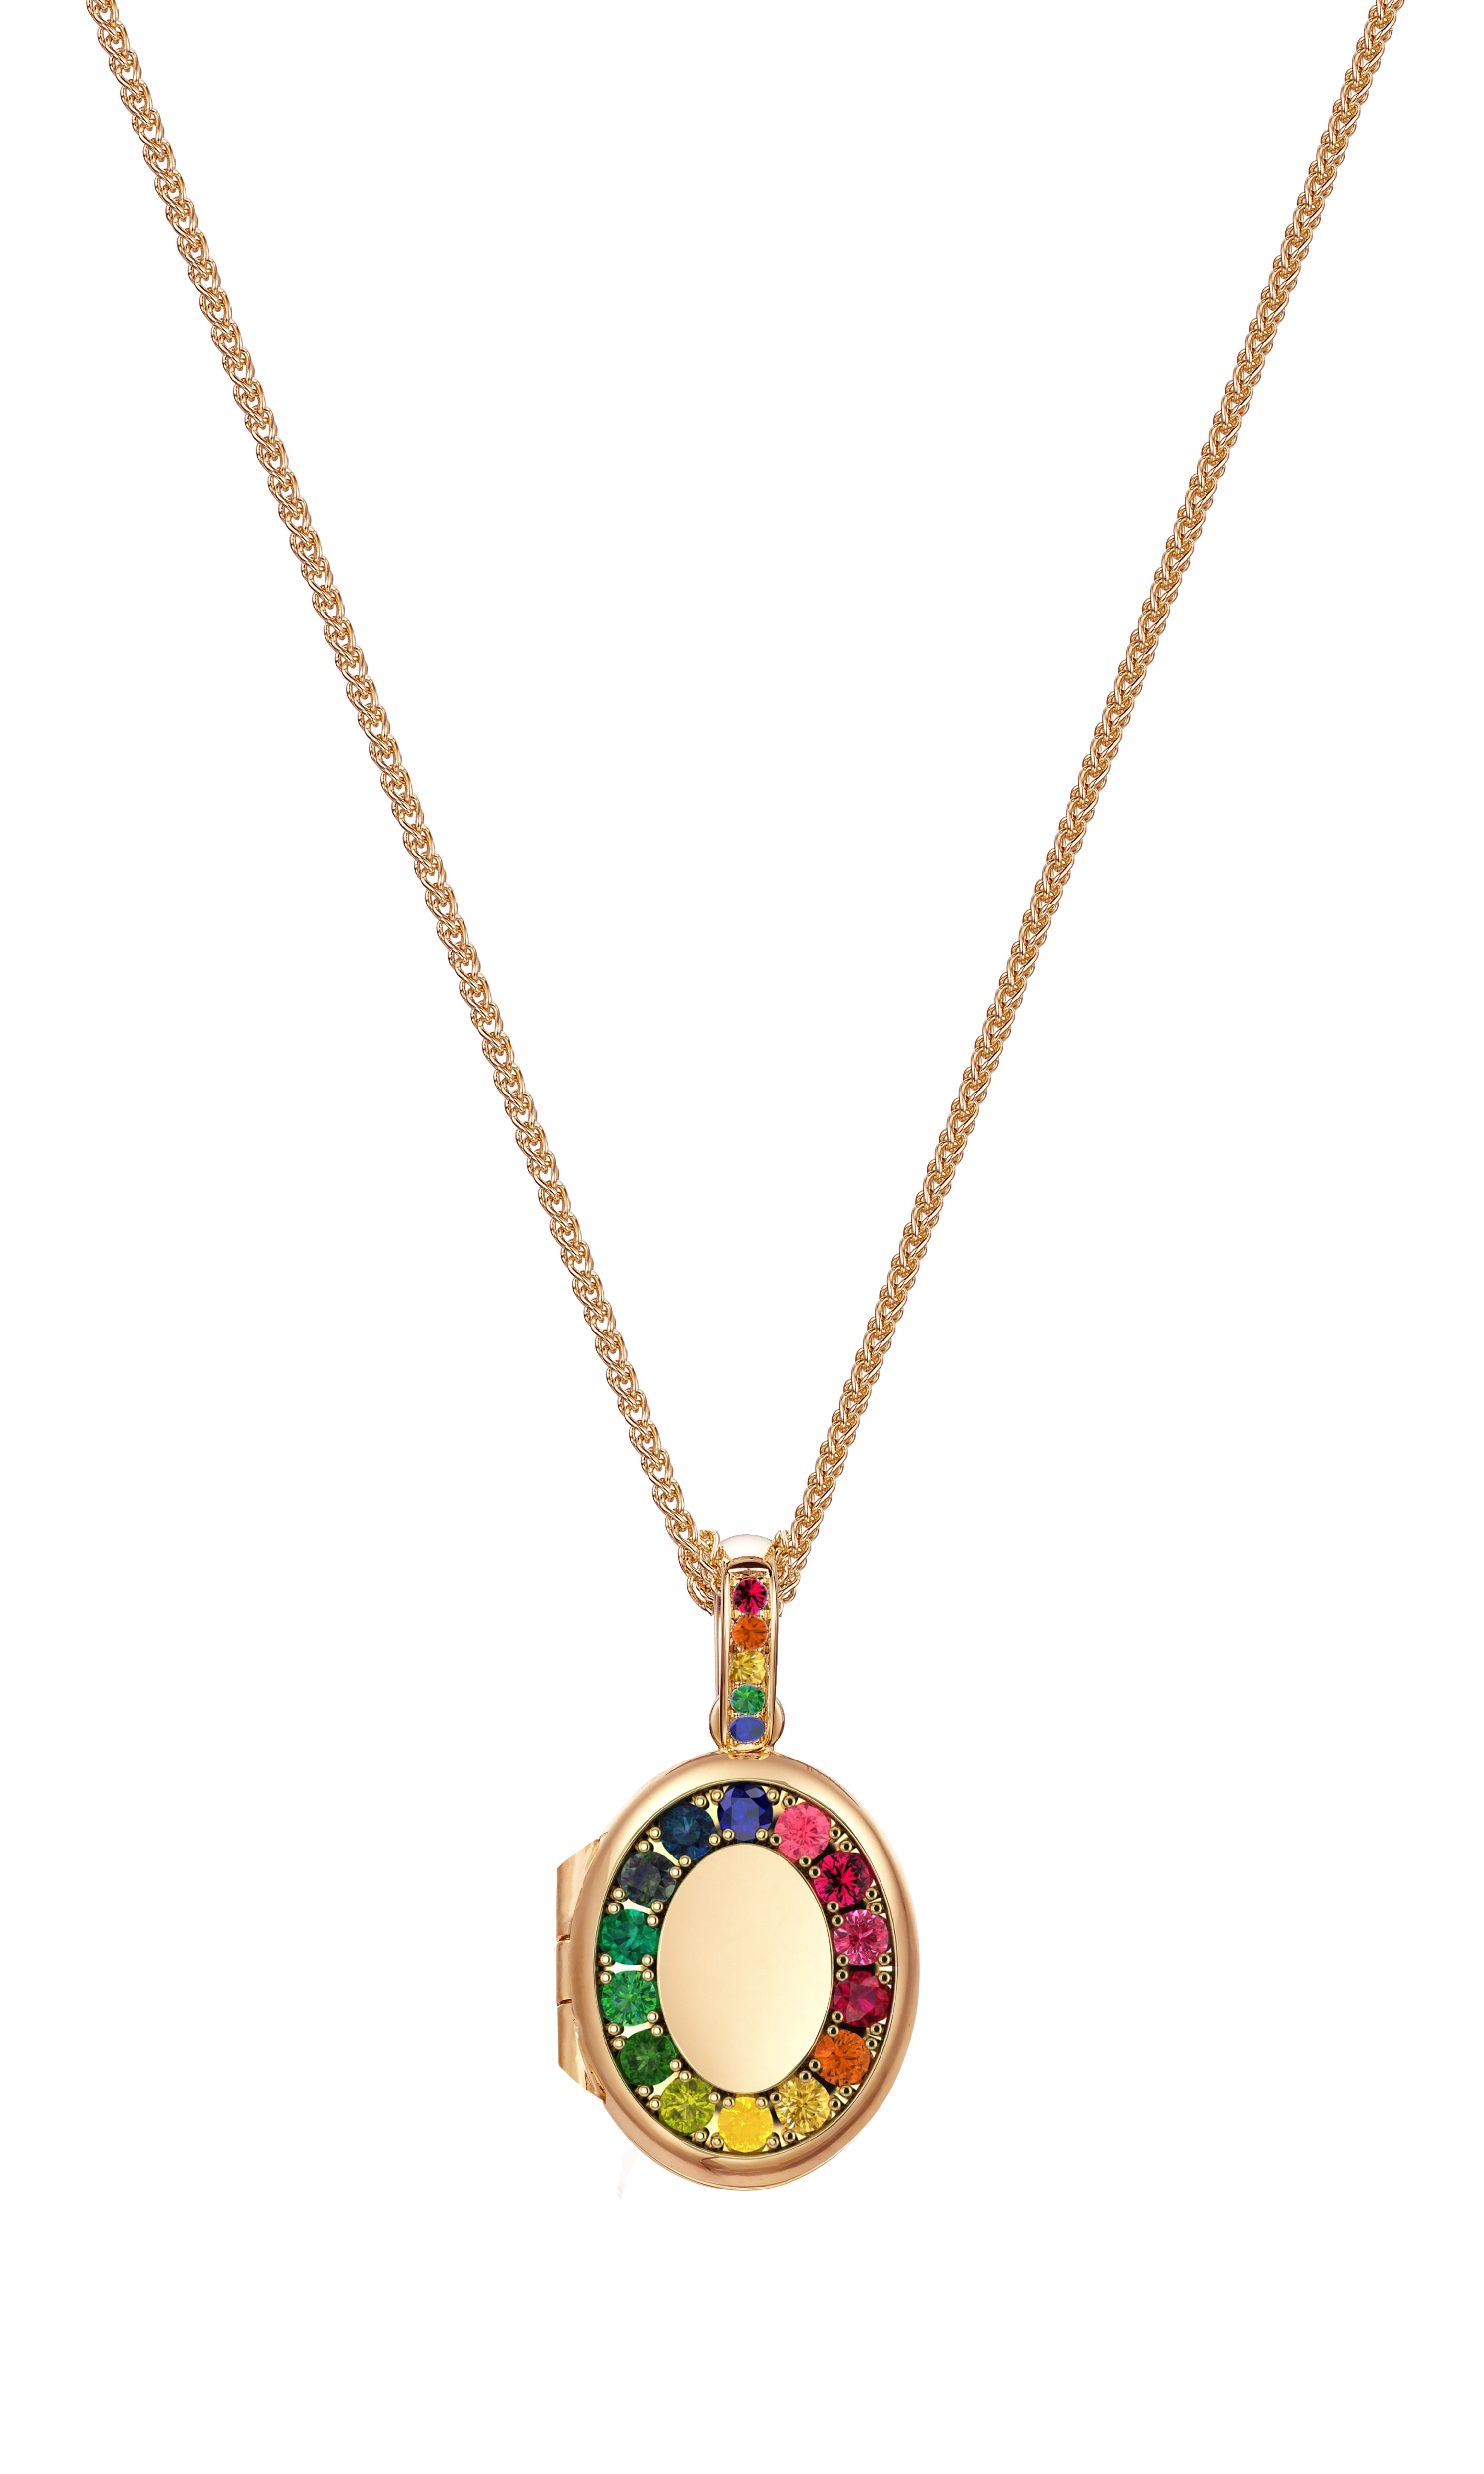 Best of British: Kay Bradley in collaboration with Charles Green & Son, Birmingham have created this unique British design to celebrate the lifting of lockdown with this Rainbow sapphire keep-sake, memory locket. British-made & bespoke-made, multi-gemstone, Rainbow sapphire oval locket with Rainbow sapphire bail in solid 9ct rose gold. Approx. carat content: 0.30cts All coming soon and available to pre-order within 8 weeks. Chains are sold separately.